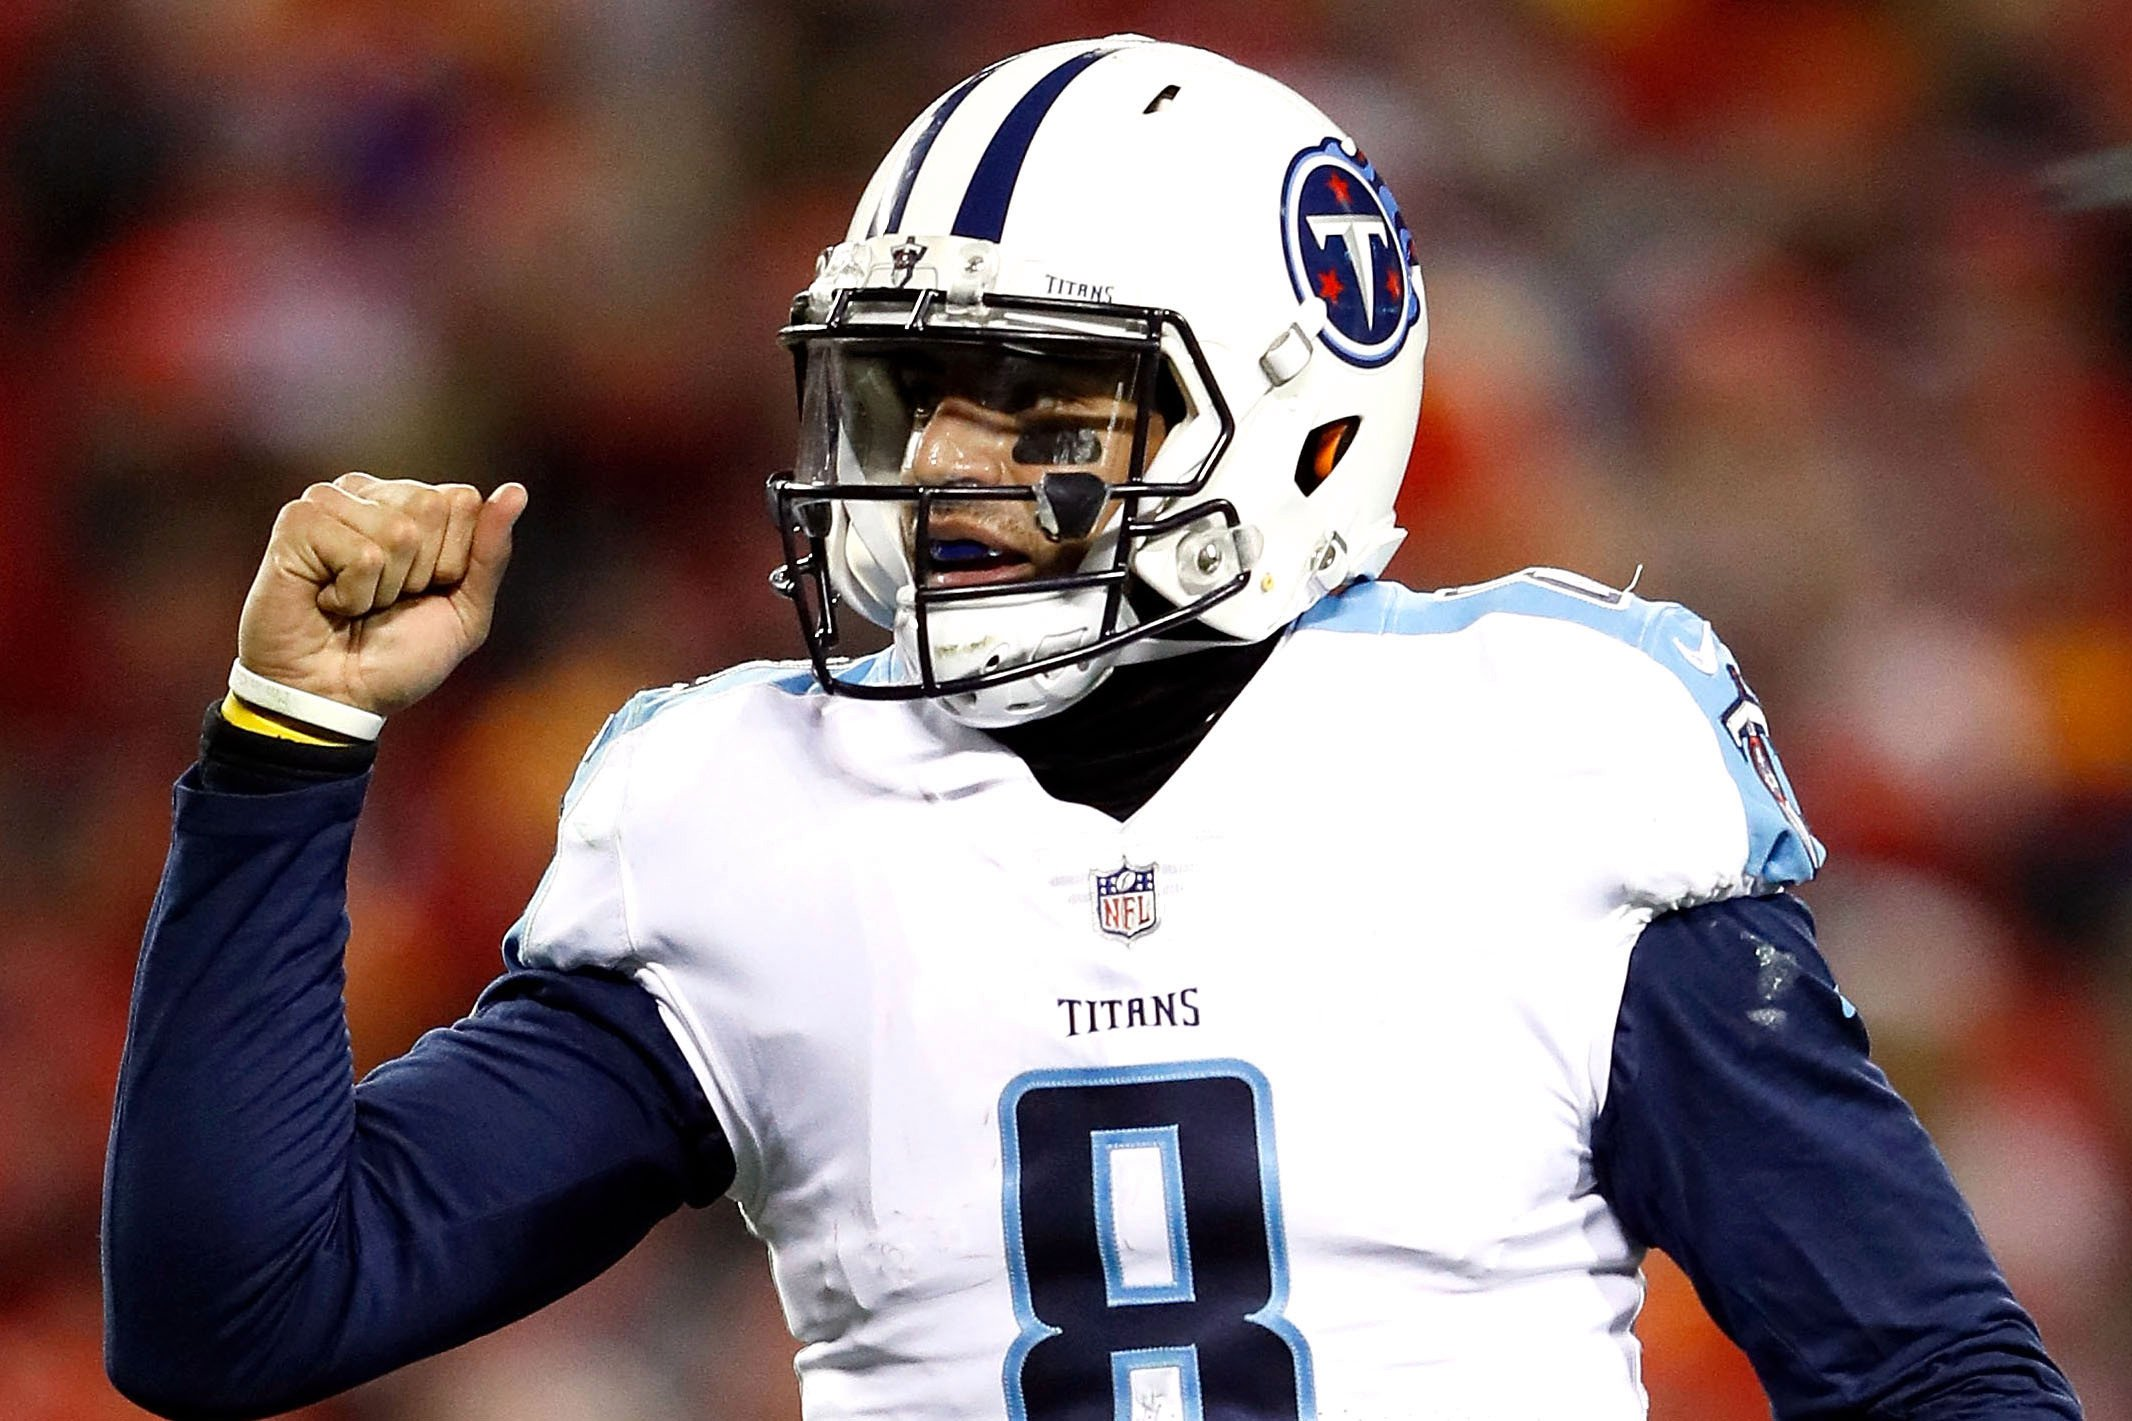 Marcus Mariota throws TD to himself in improbable Titans' win